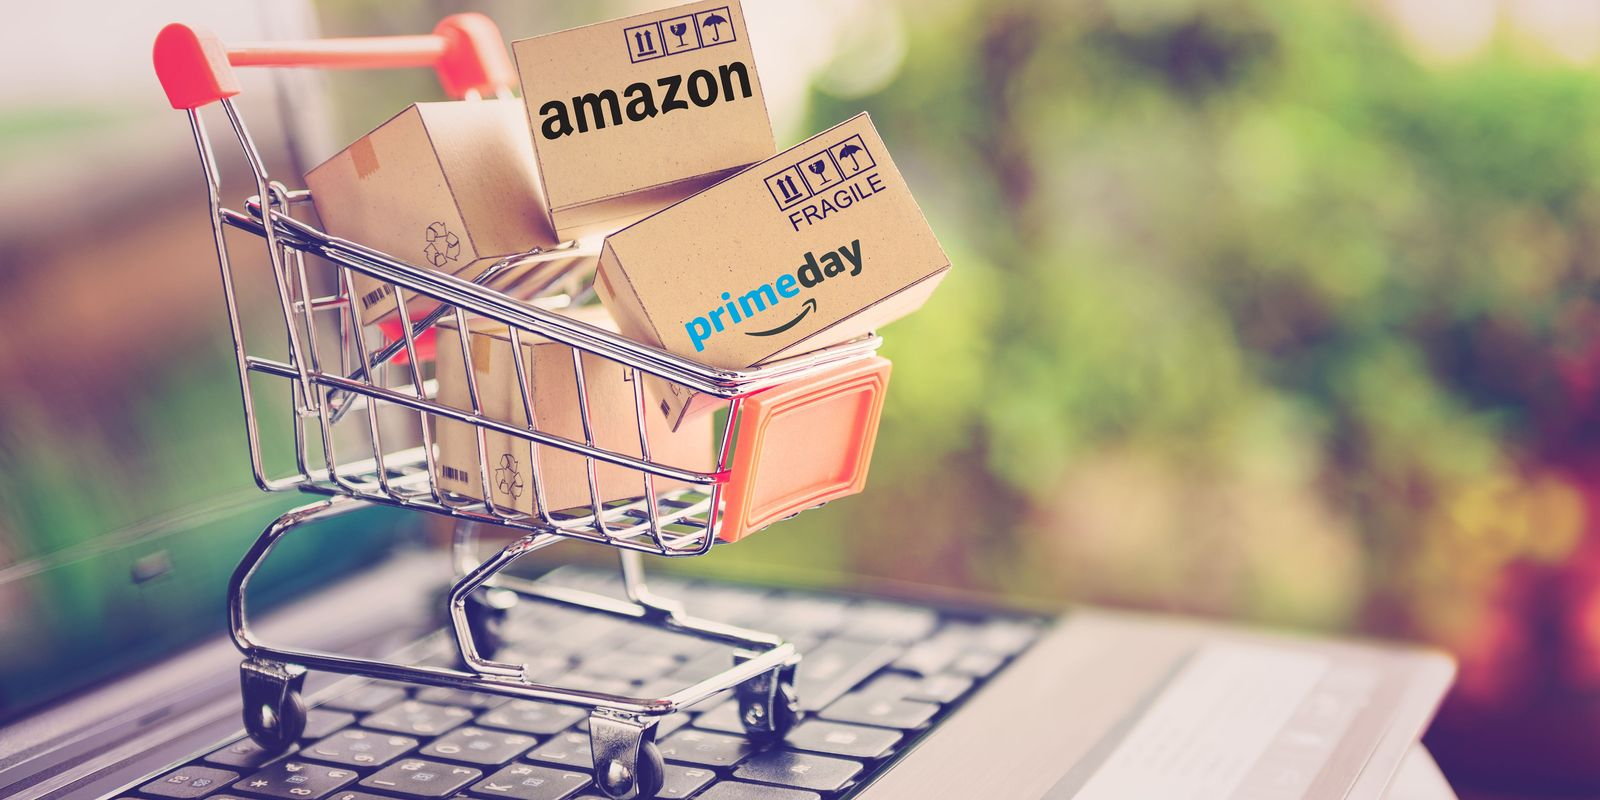 3 Reasons Amazon's Prime Day was a Smash Hit